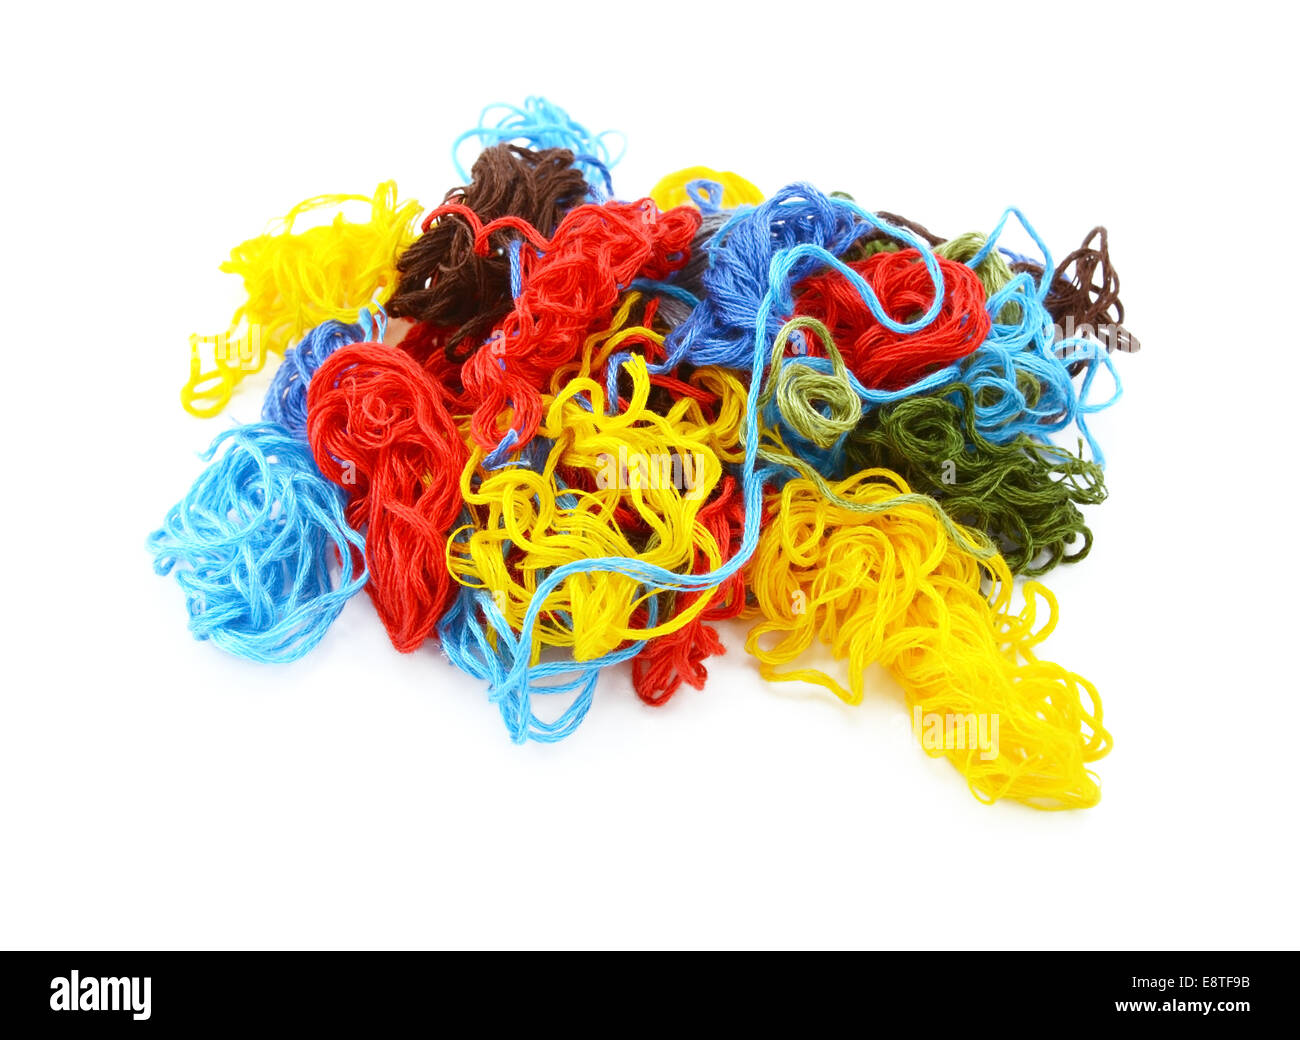 Multi-coloured embroidery threads in a tangled heap, isolated on a white background - Stock Image